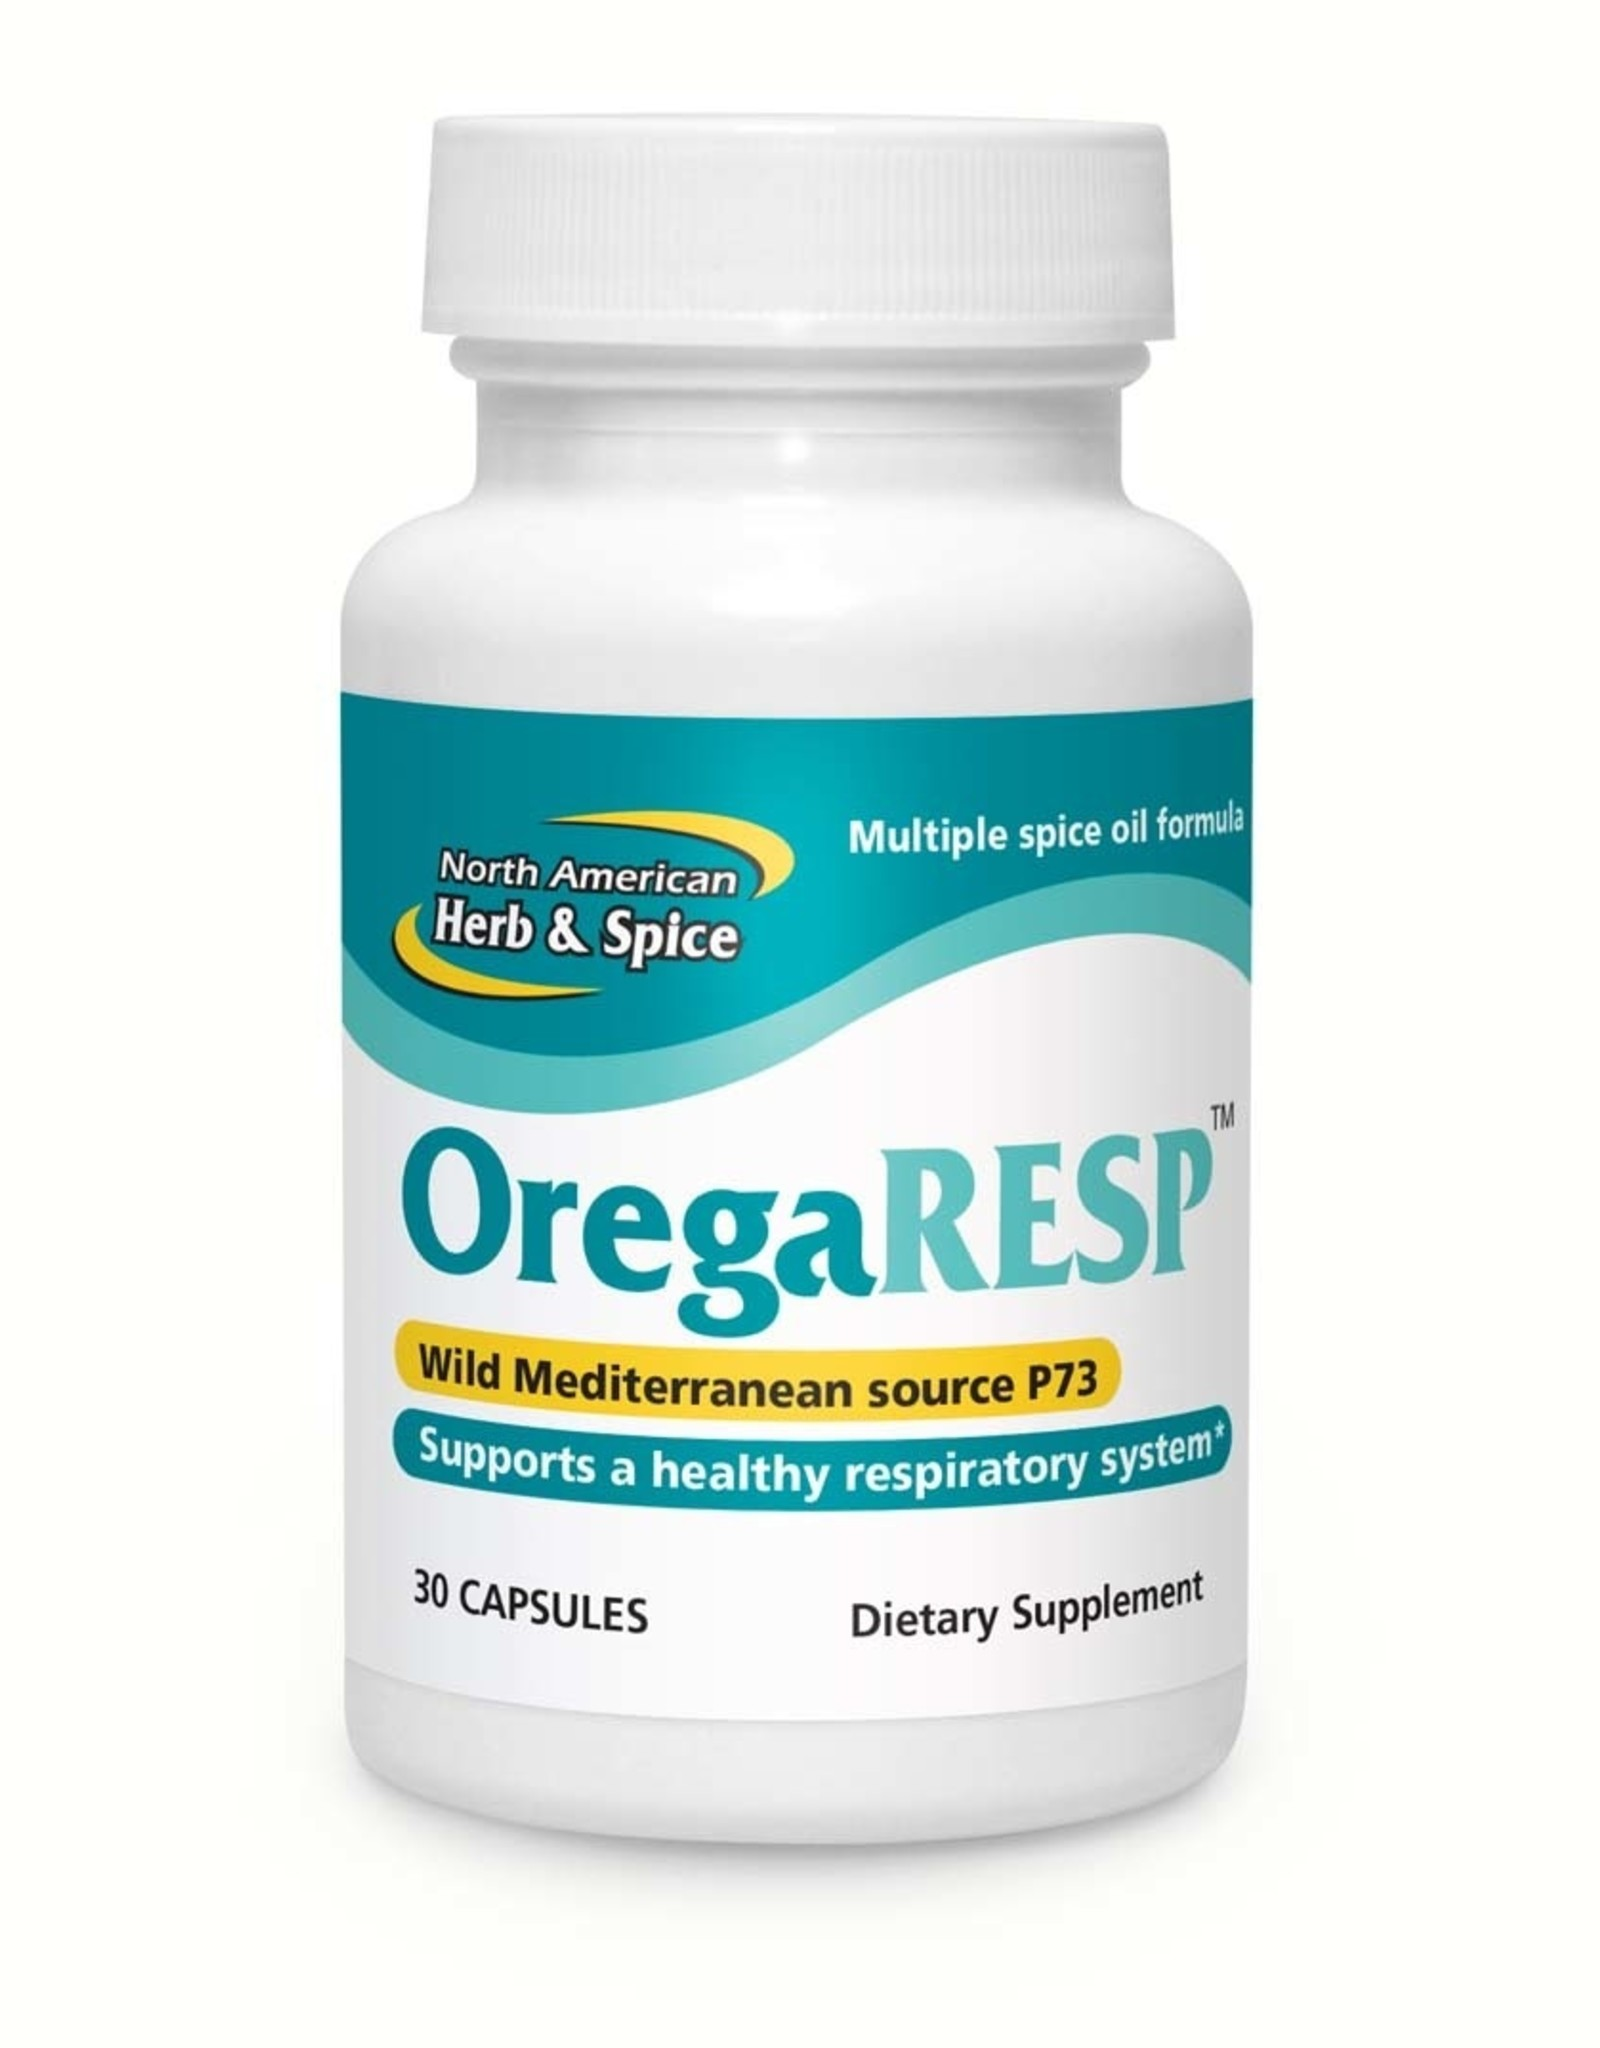 North American Herb & Spice OregaResp 30 ct